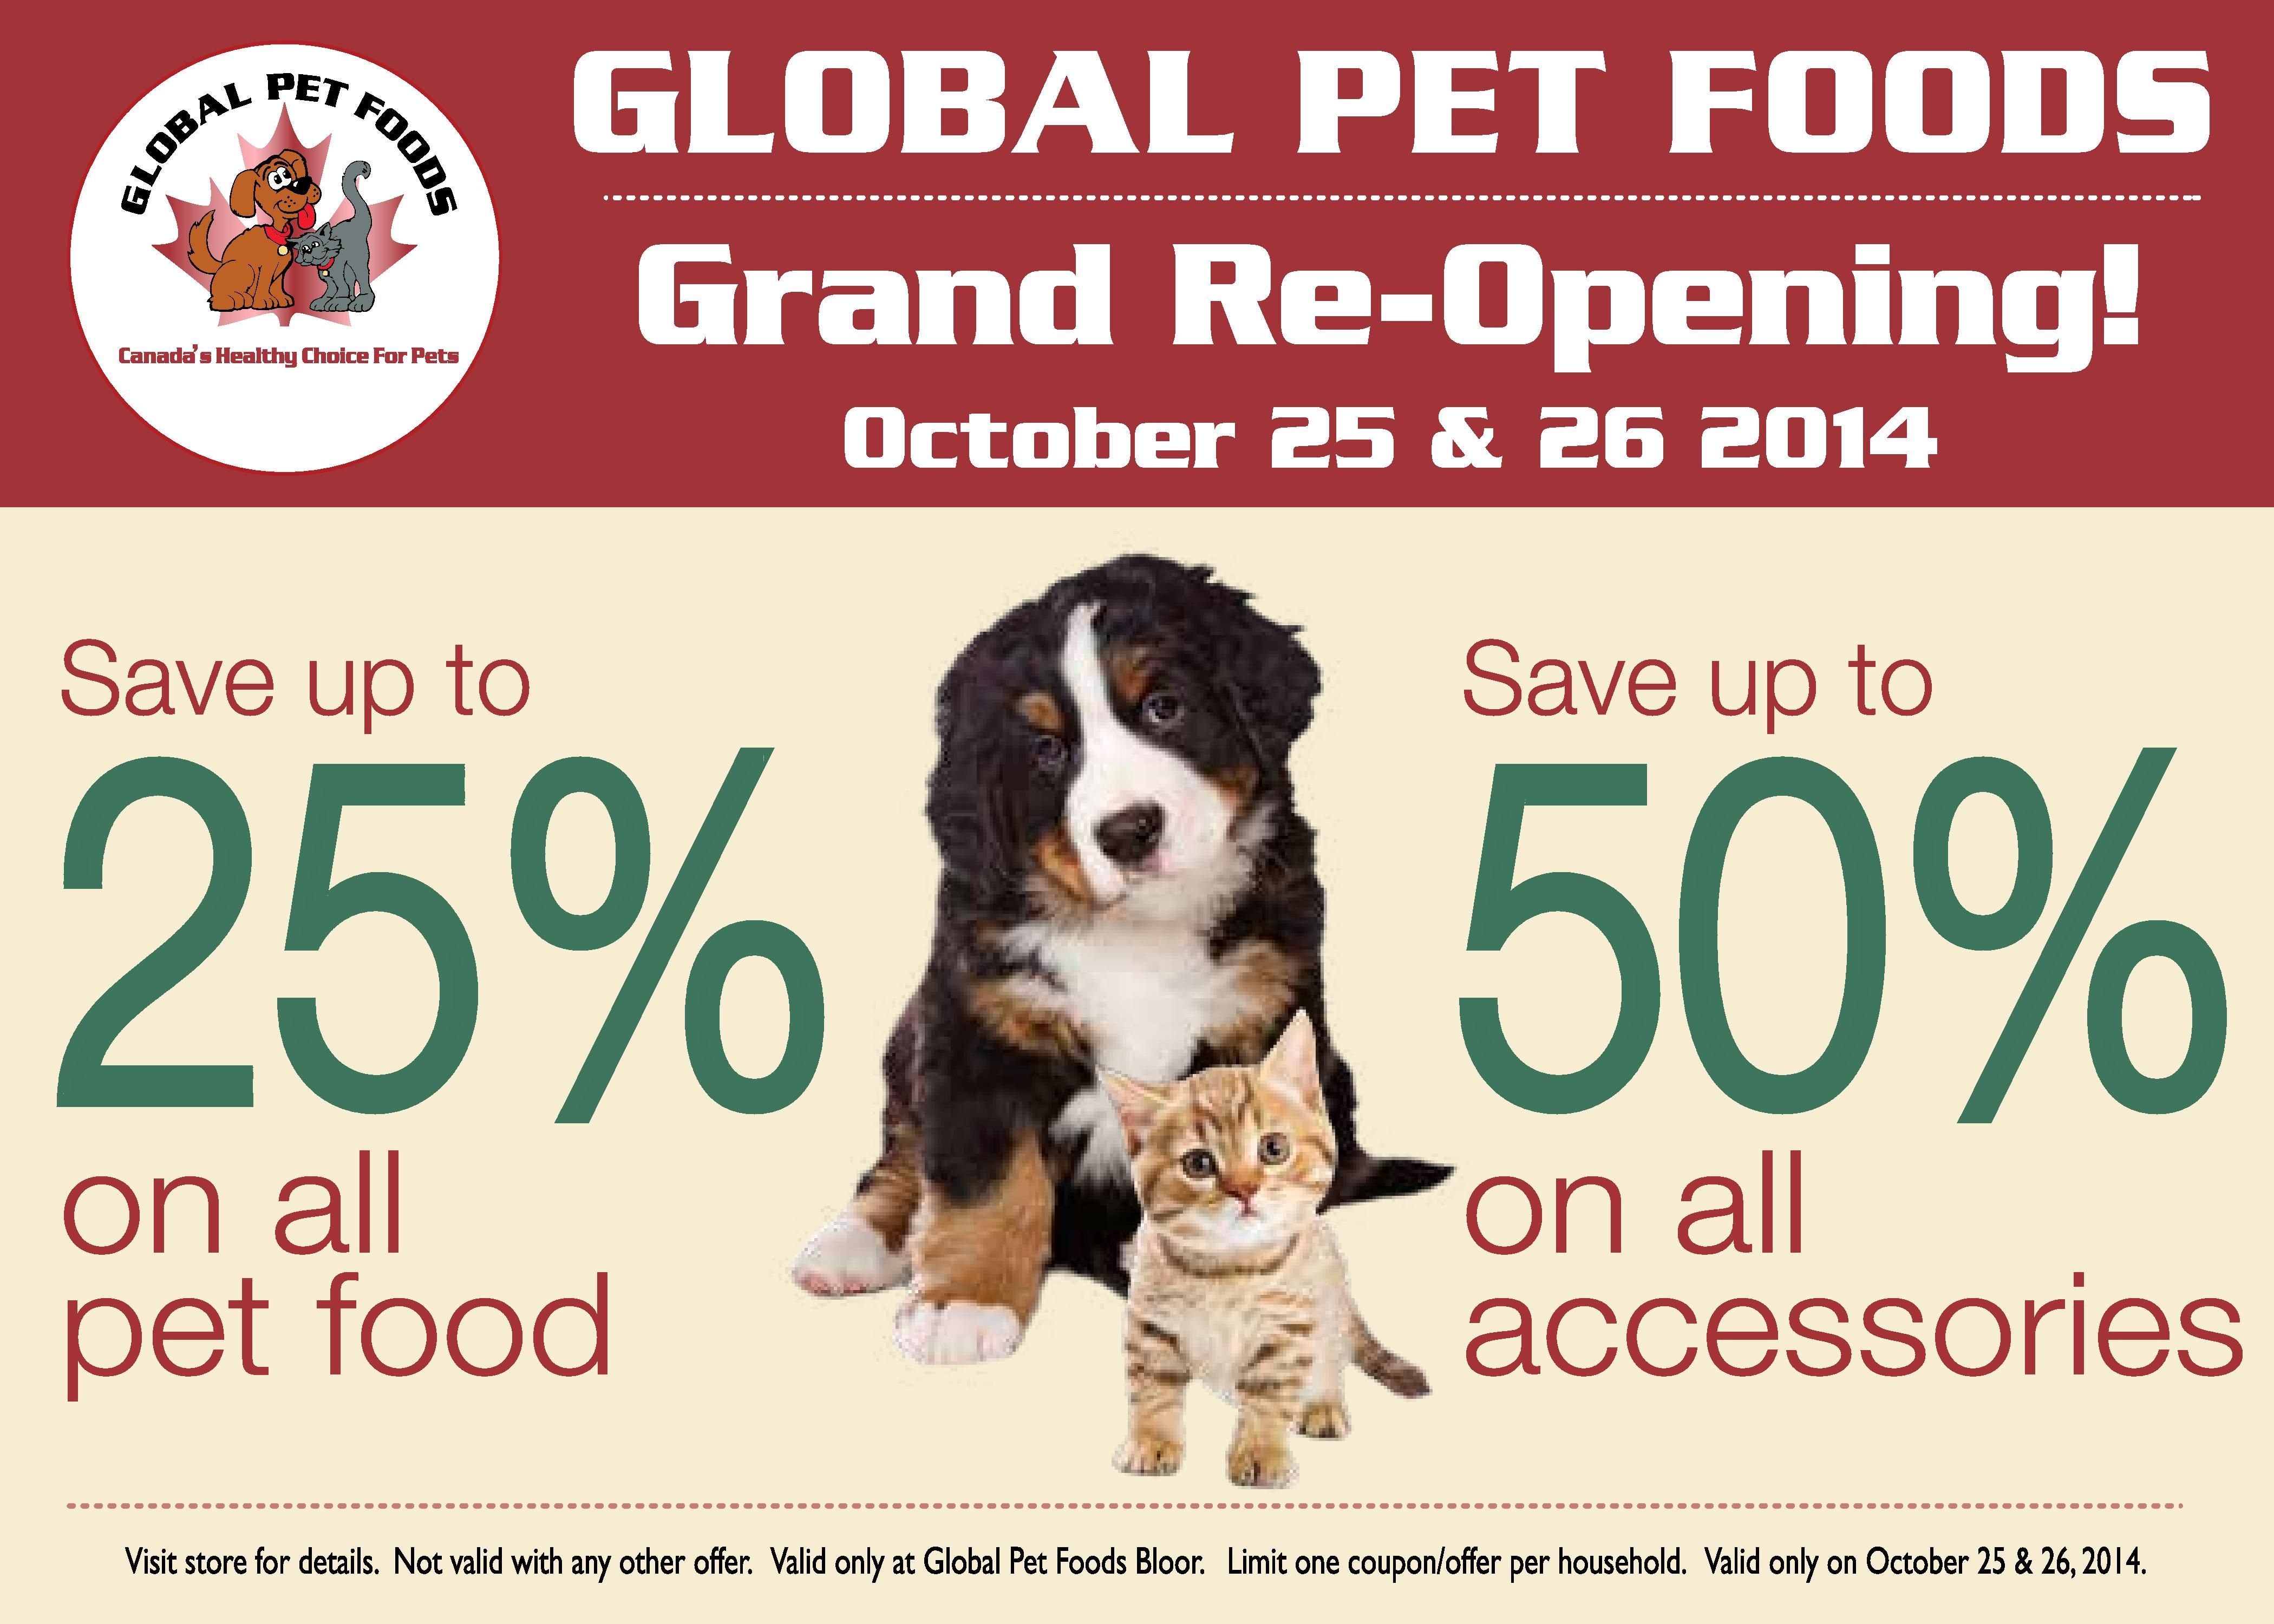 The Global Pet Foods Store In Toronto Located At 2100 Bloor Street West Is Holding A Grand Re Opening Event On October 25 Pet Food Store Pet Event Food Animals